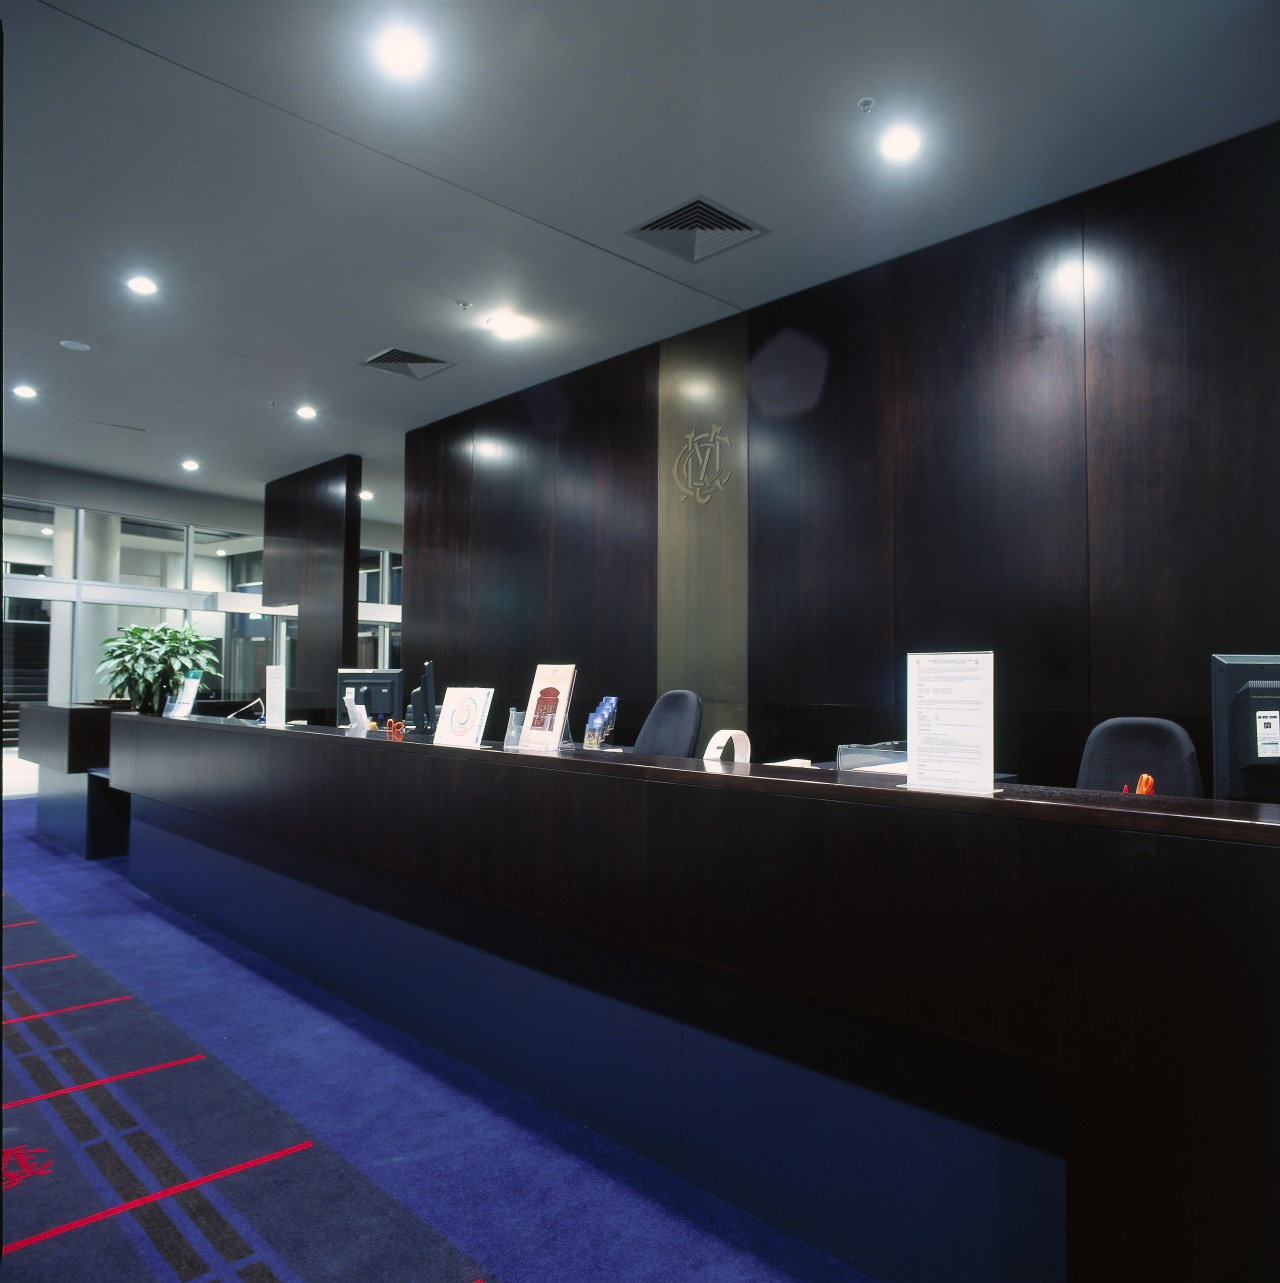 Counter area with timber counter and walll panelling. architecture, ceiling, interior design, lighting, lobby, black, gray